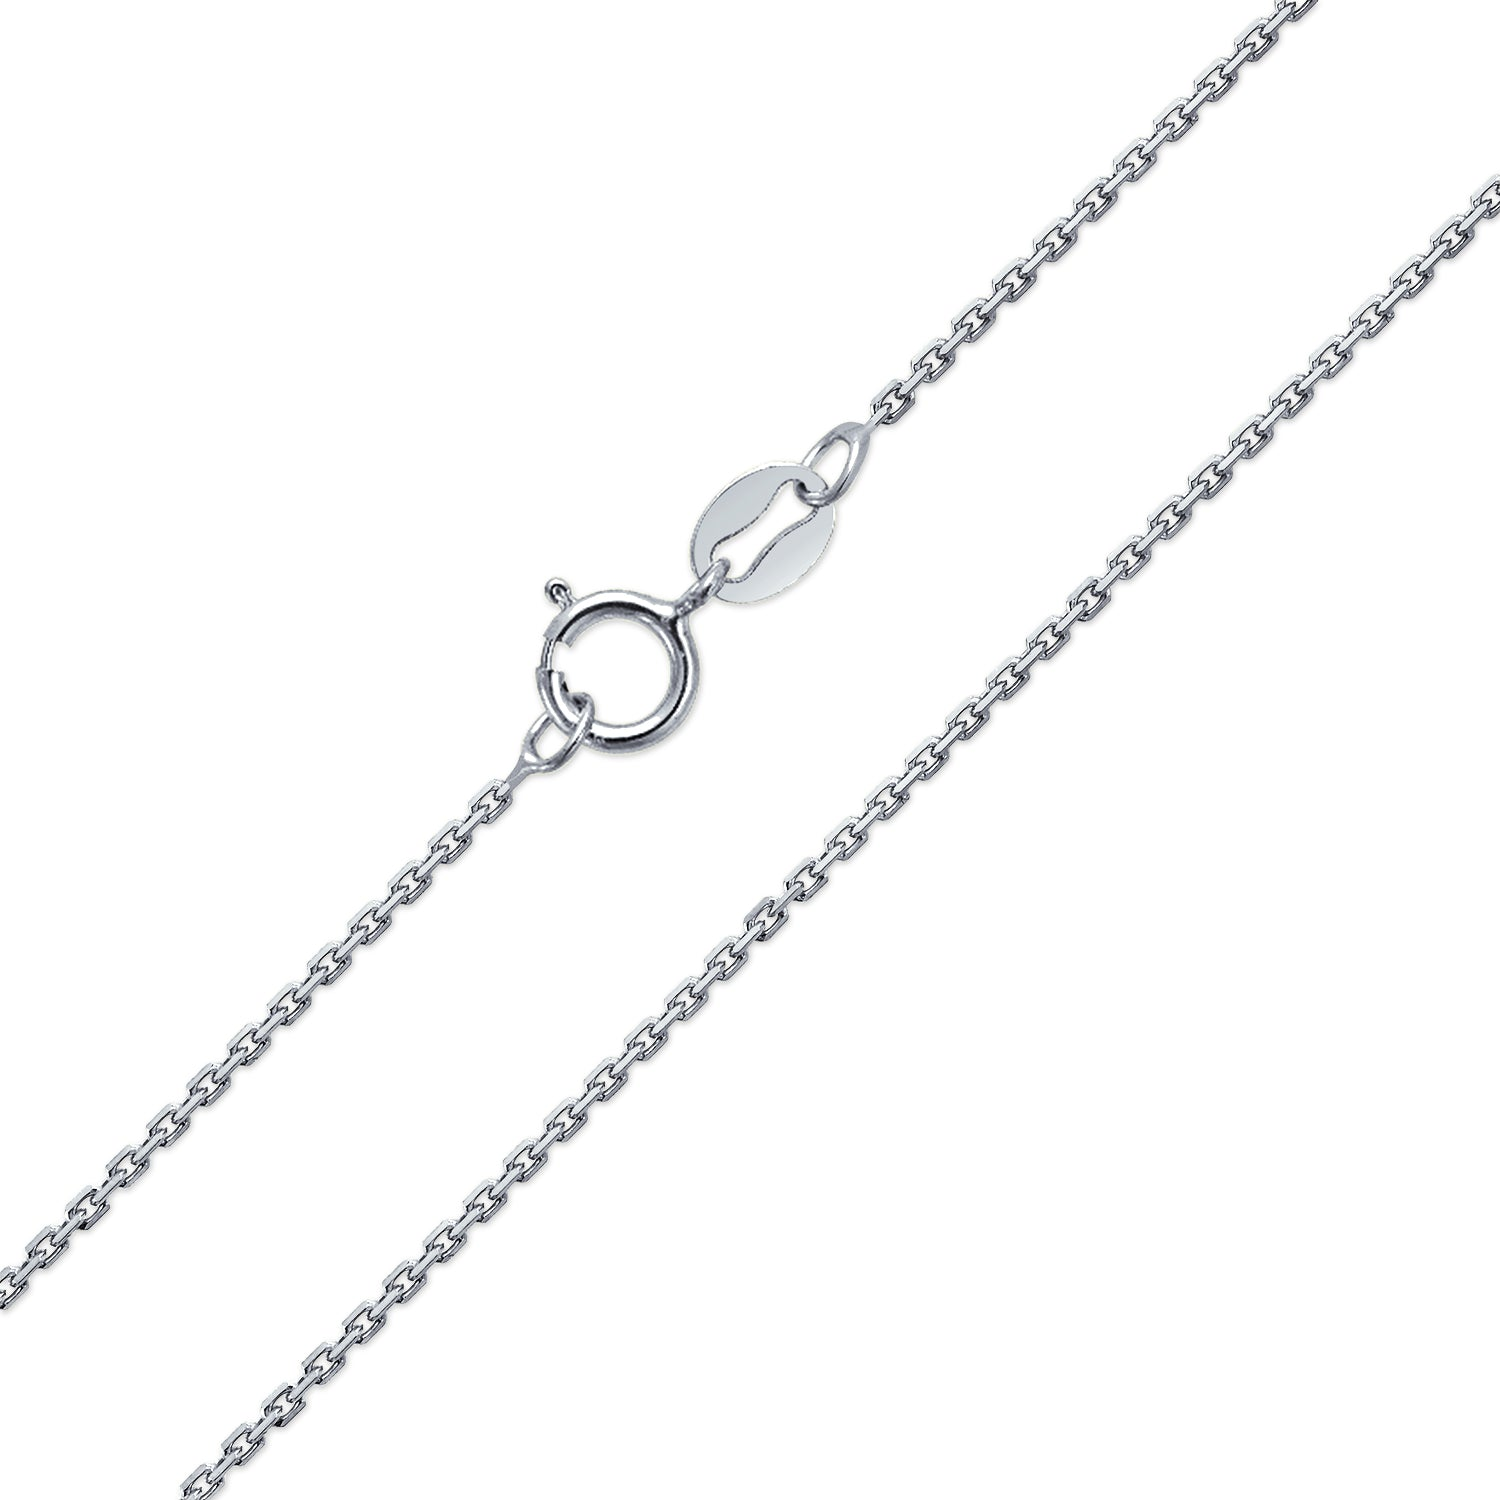 Snake or Ball Chain Necklace Sterling Silver Small Satin Number 19 on a Sterling Silver Cable